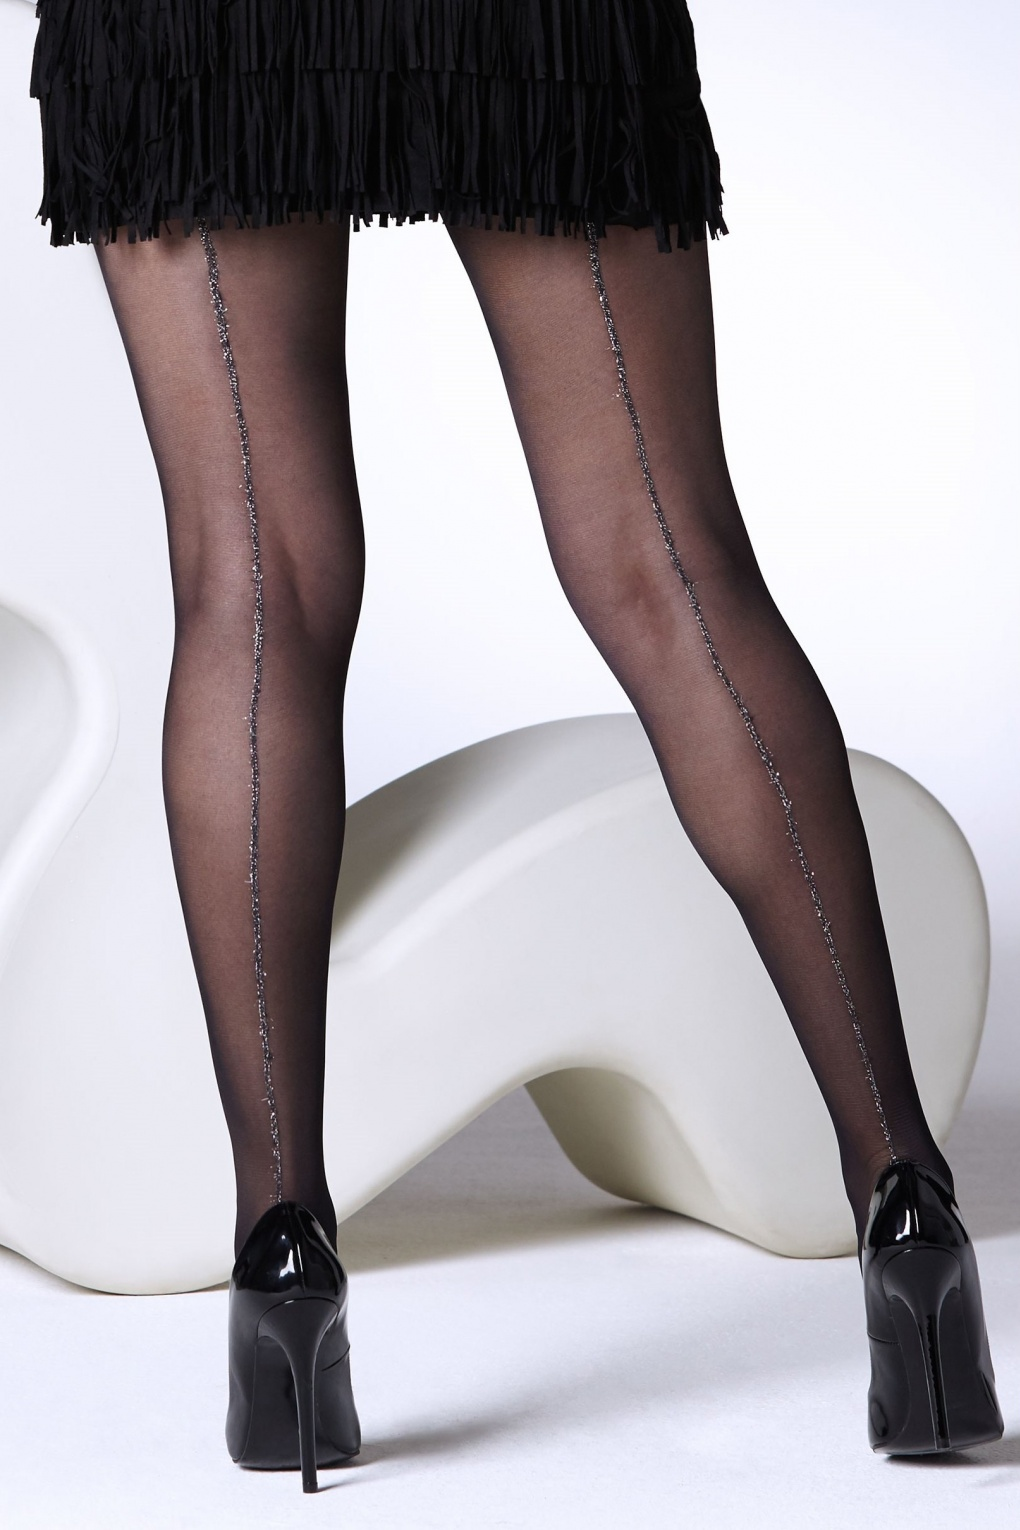 1950s Stockings and Nylons History & Shopping Guide 50s Sparkle Seamed Tights in Black £6.99 AT vintagedancer.com